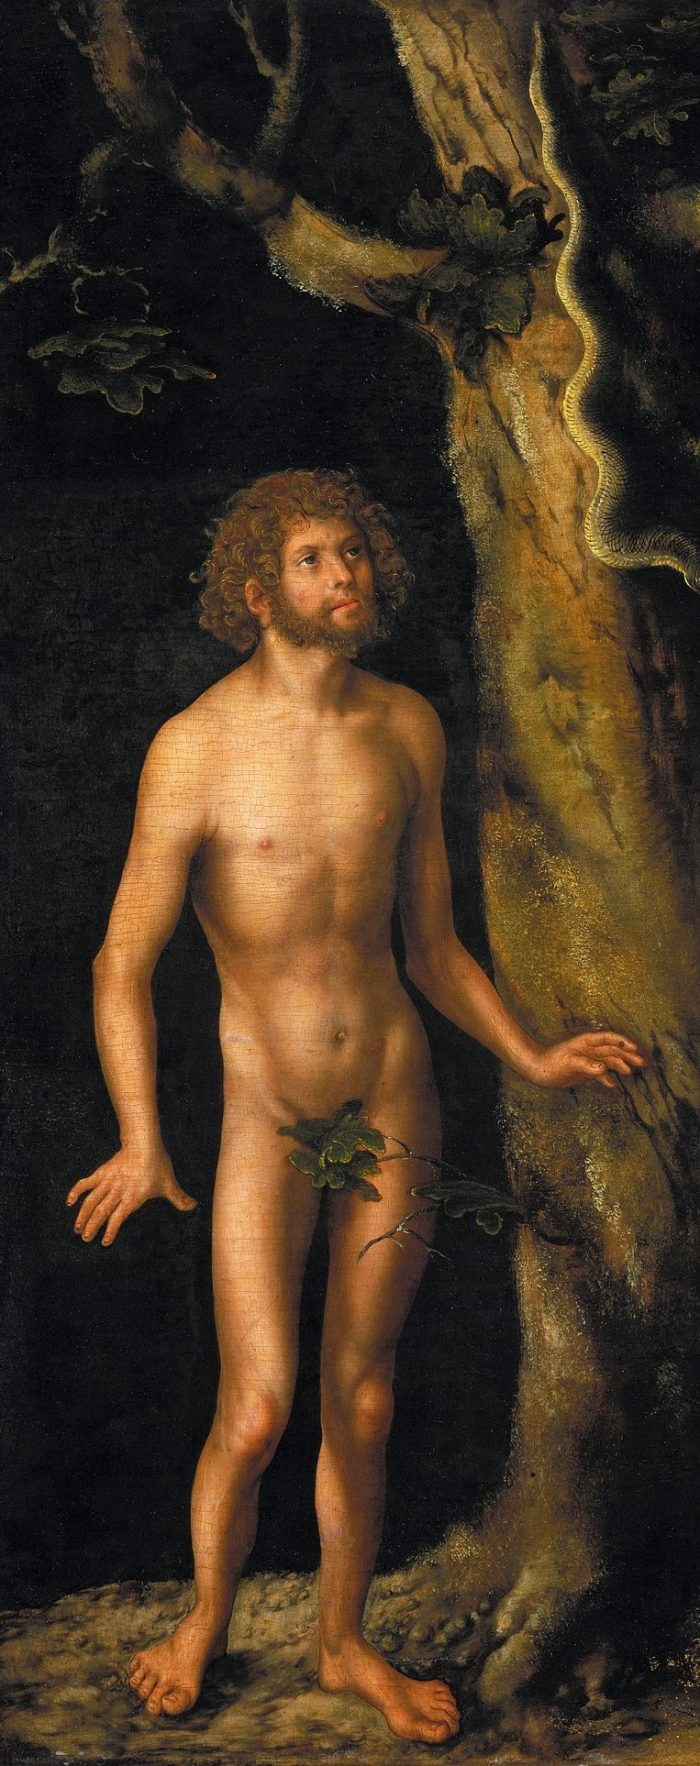 cranach_the_elder_adam_and_eve